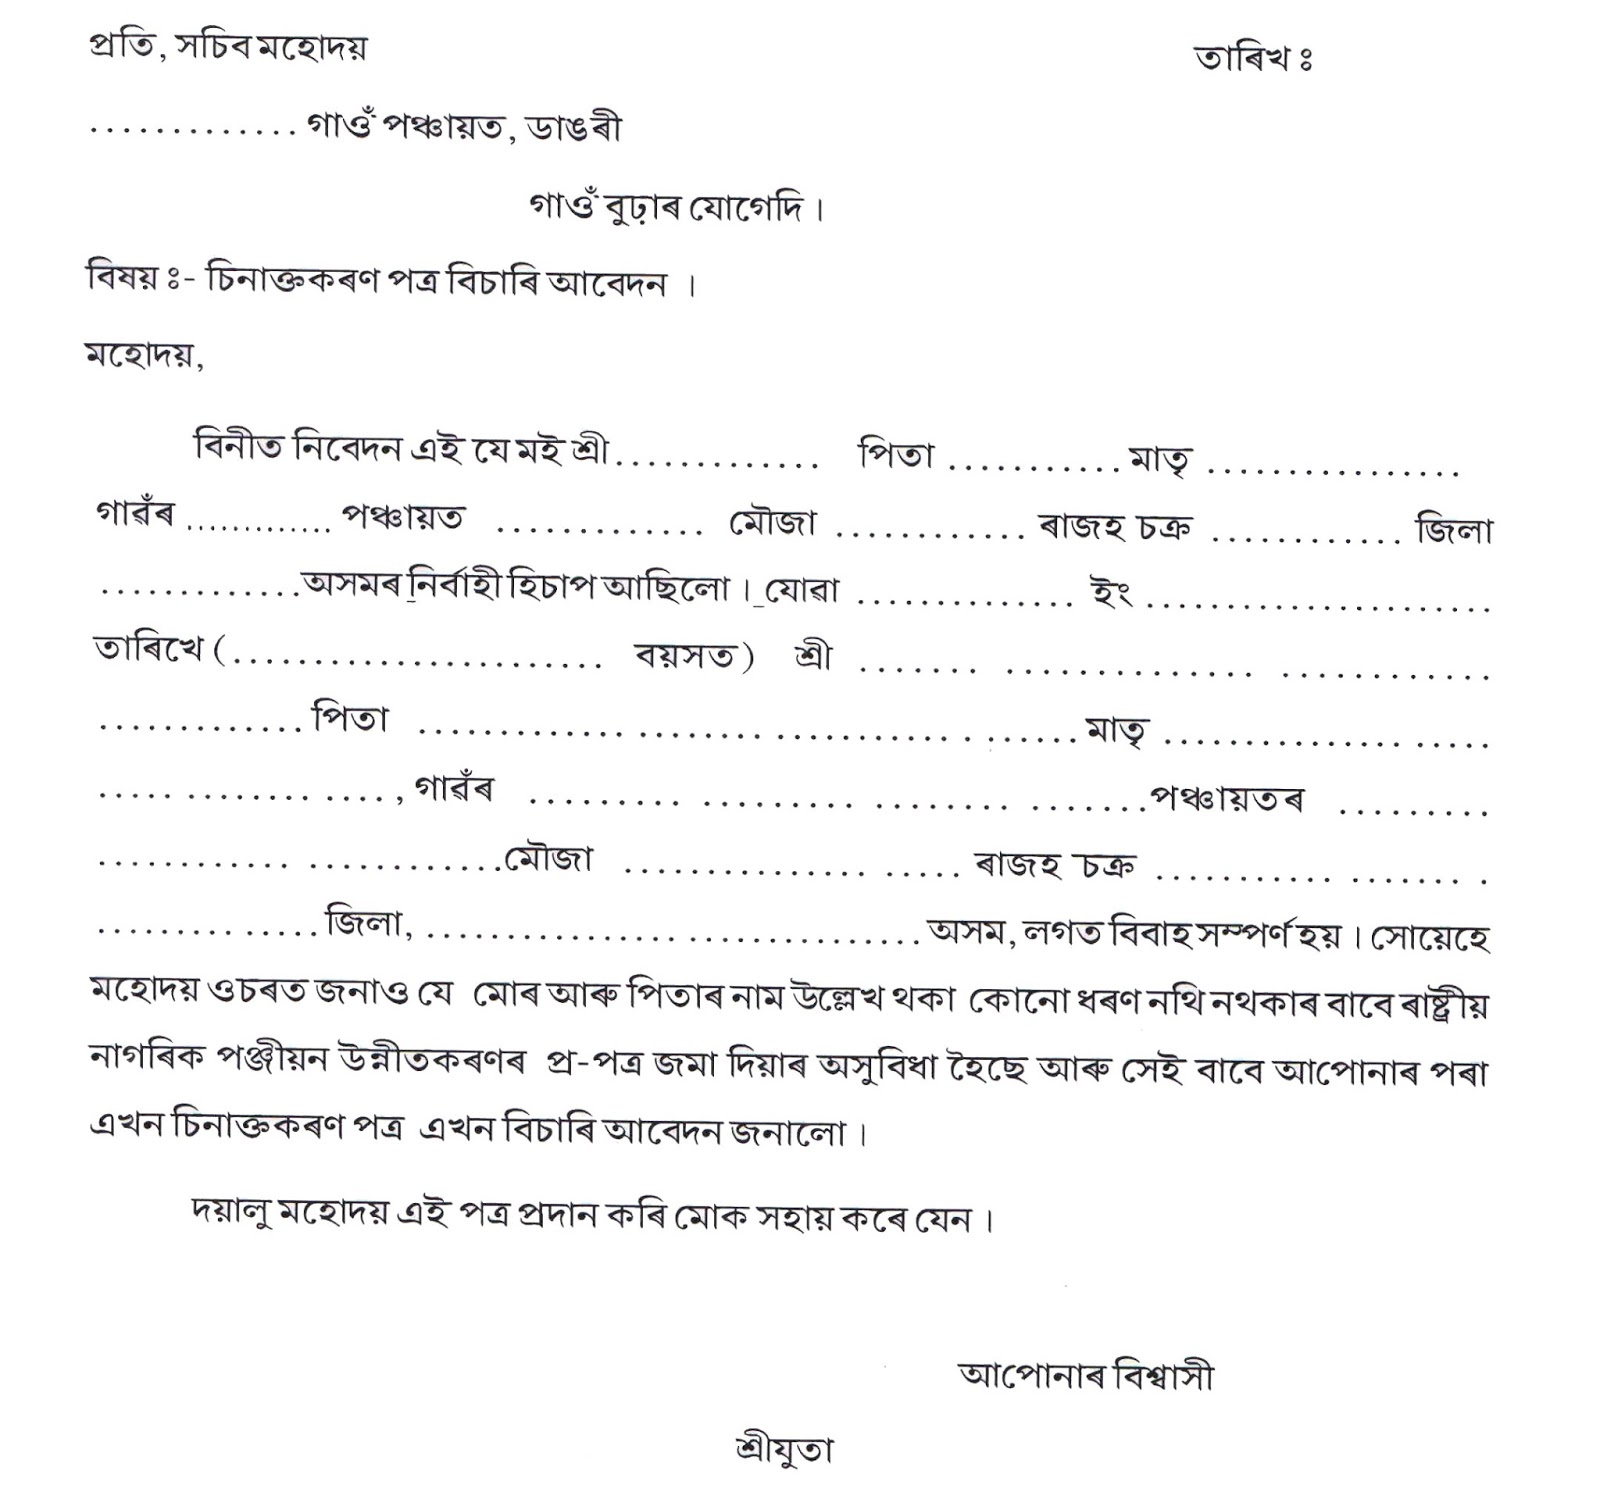 Certificat gaon panchayat format file example images download cv application for resident certificate from gaon panchayat assamese application for resident certificate from gaon panchayat assamese yadclub Gallery